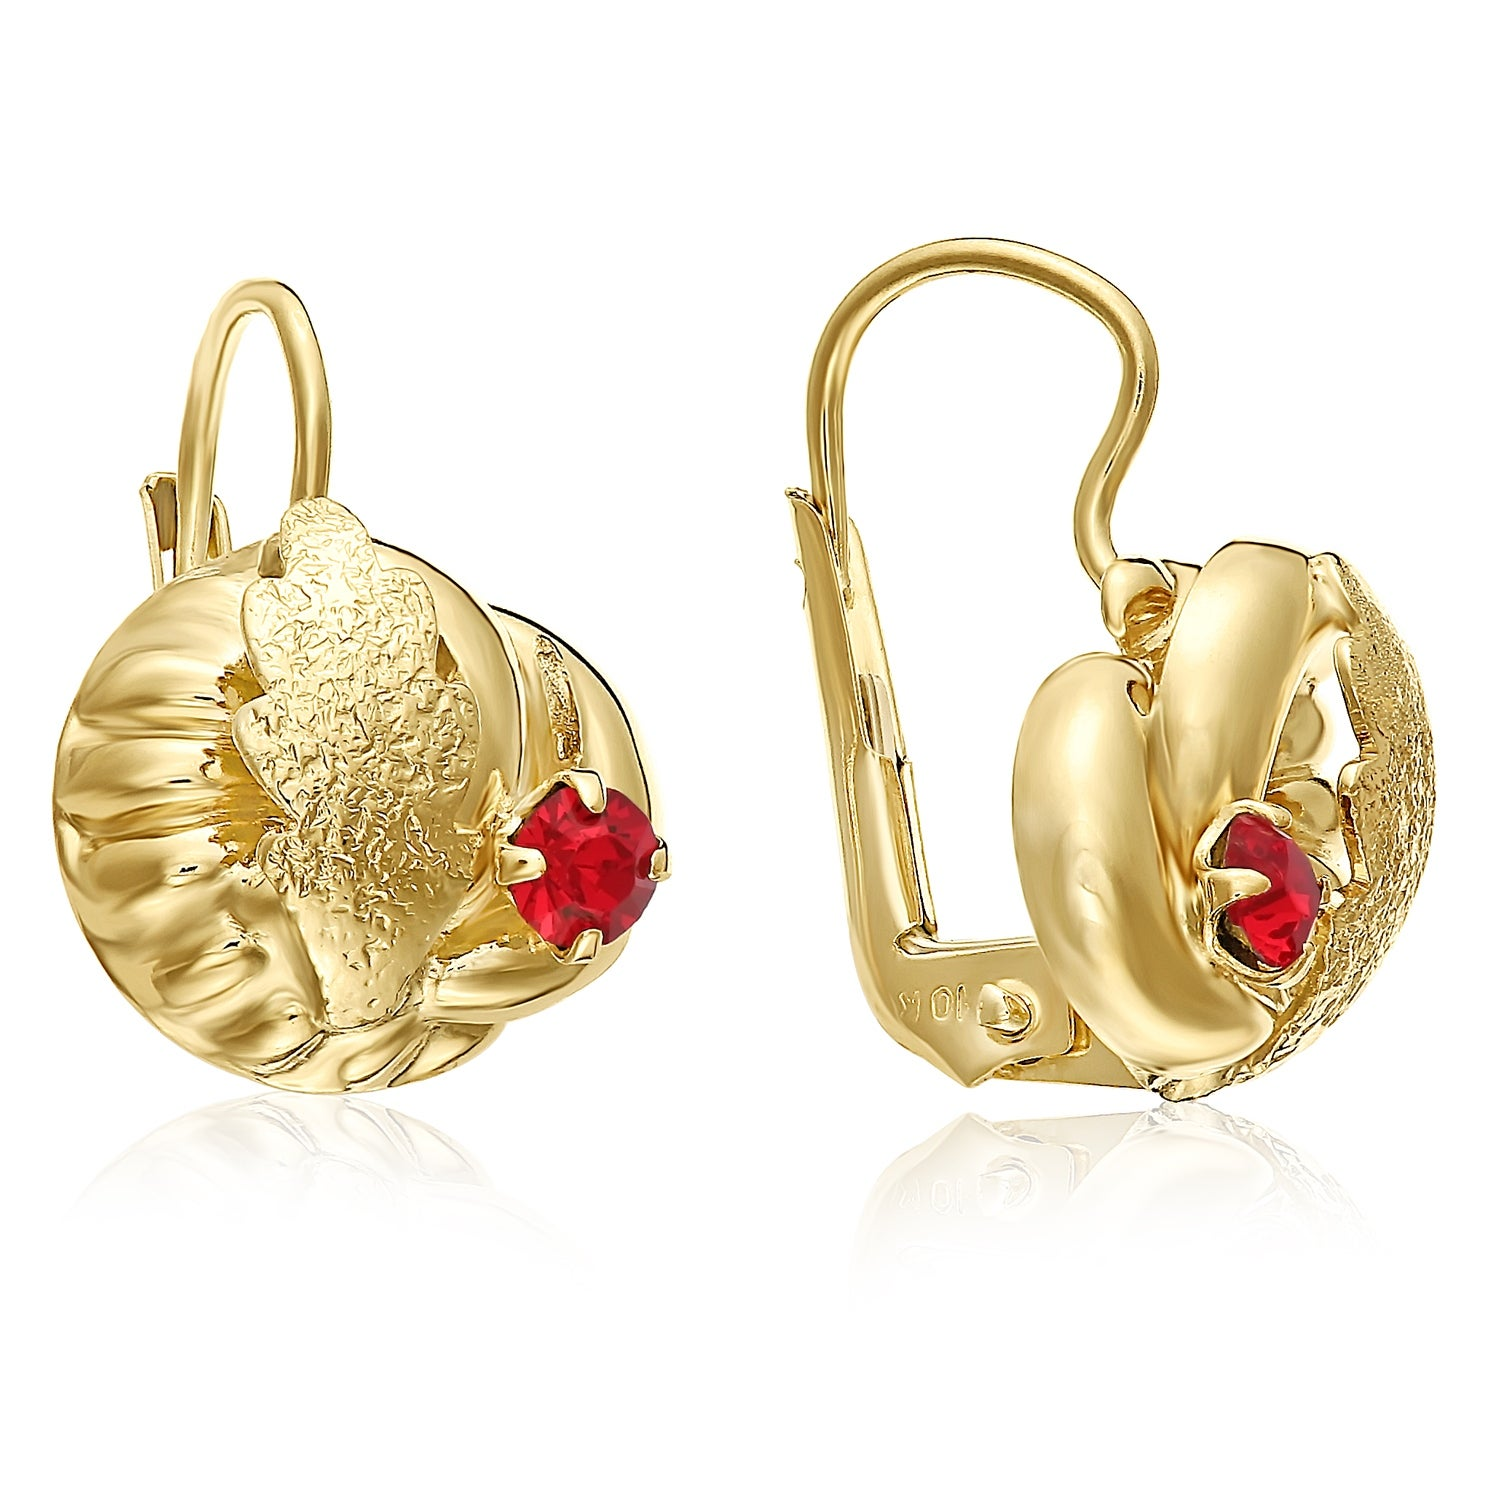 4ede9782e Shop Mcs Jewelry Inc 10 KARAT YELLOW GOLD STUD EARRINGS WITH LEAF DESIGN  AND RED STONE - On Sale - Free Shipping Today - Overstock - 11861799